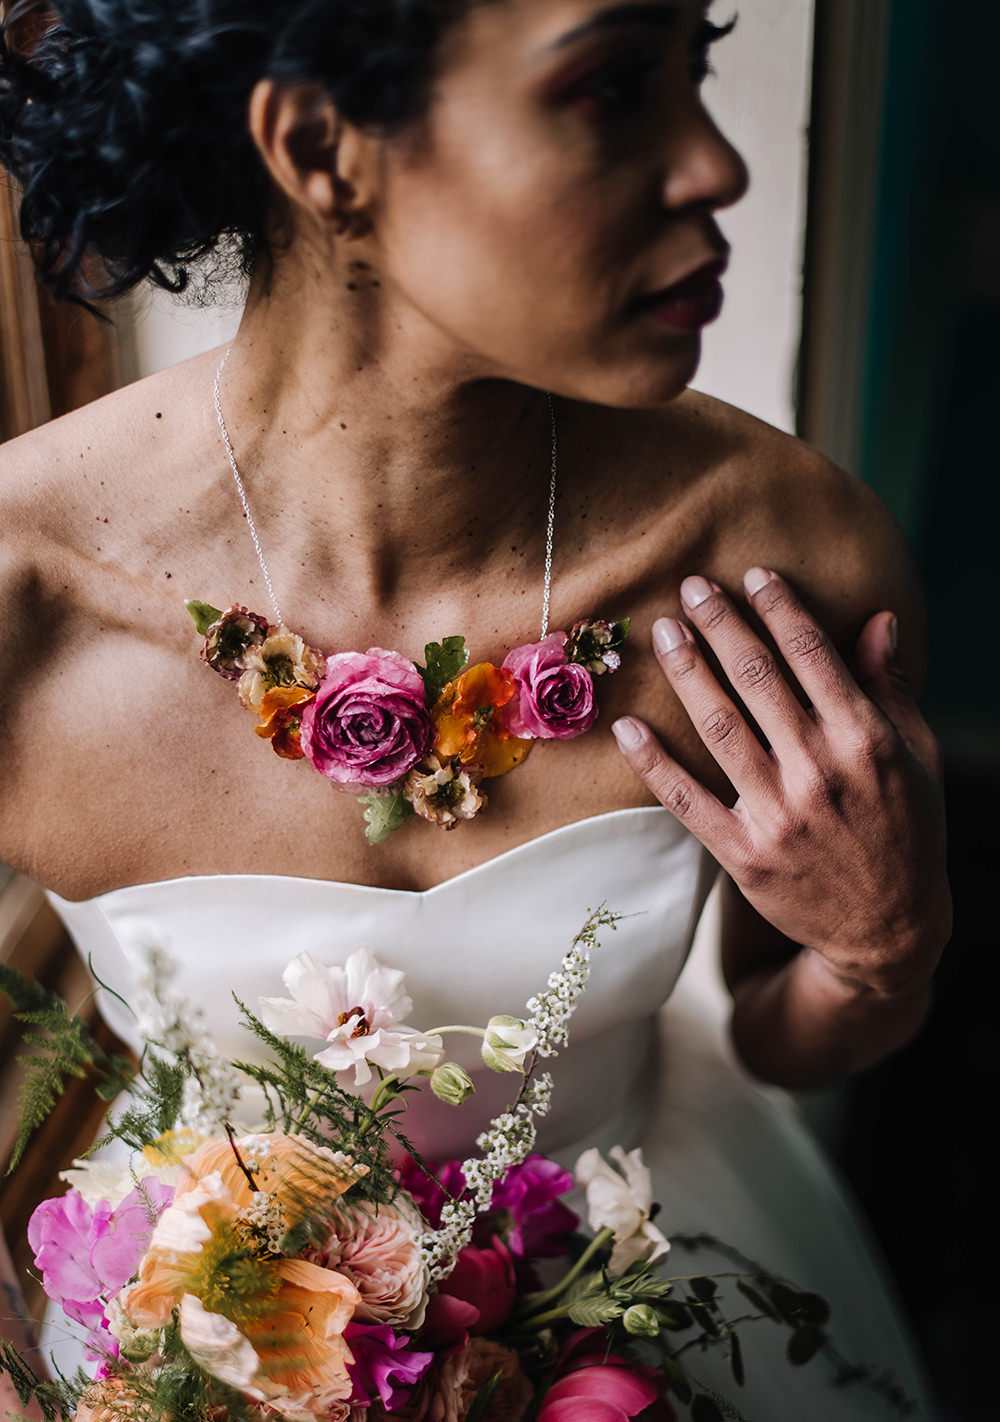 Flower Necklace Bride Bridal Accessory Jewellery Coral Floral Wedding Ideas Birgitta Zoutman Photography